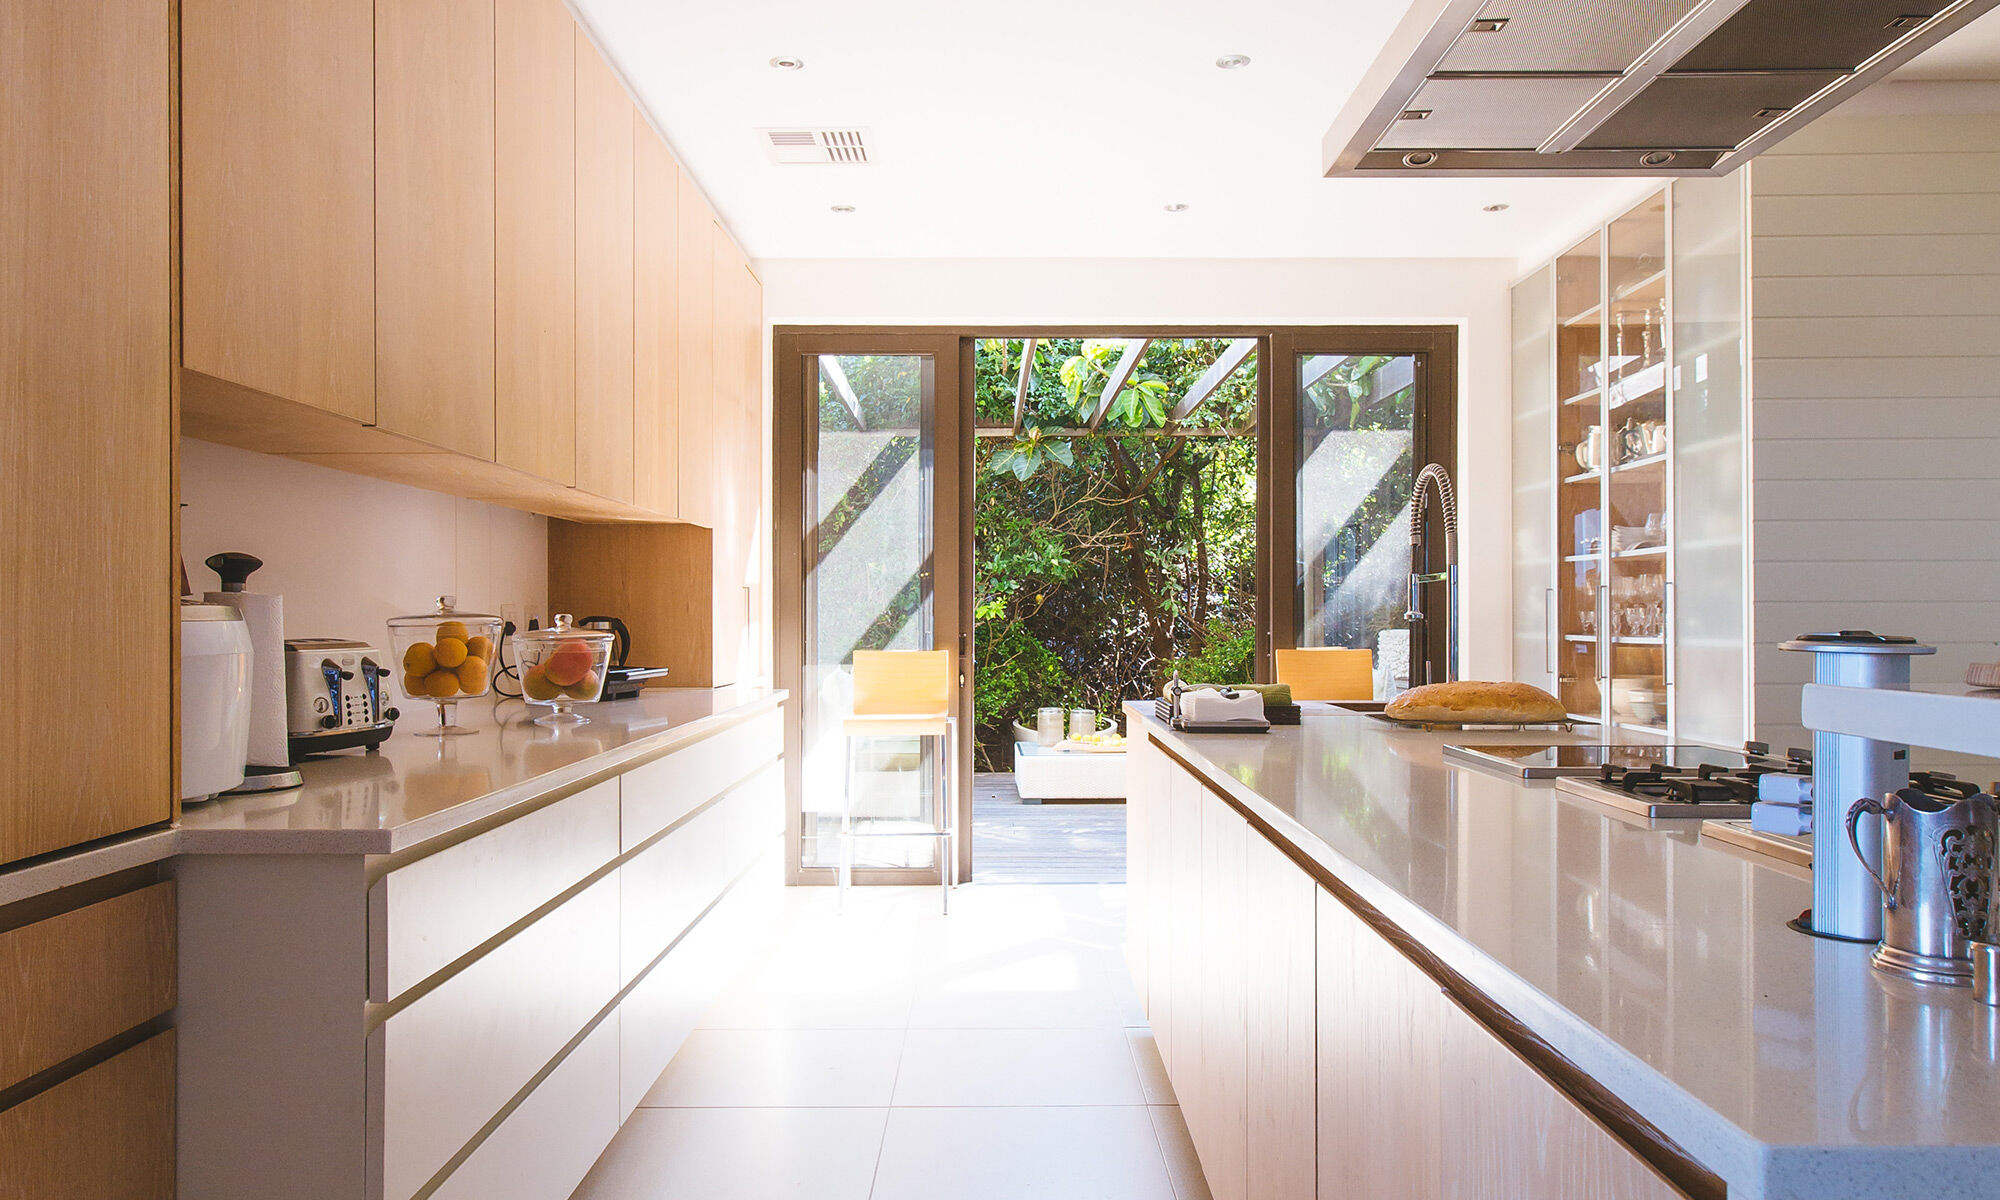 UHS constantly restores, transform, renovate & will be more than happy to cater to all your remodeling services. Our aim is for you the customer to enjoy your remodeled kitchen and have the piece of mind that your kitchen was handled with great care & years of experience .